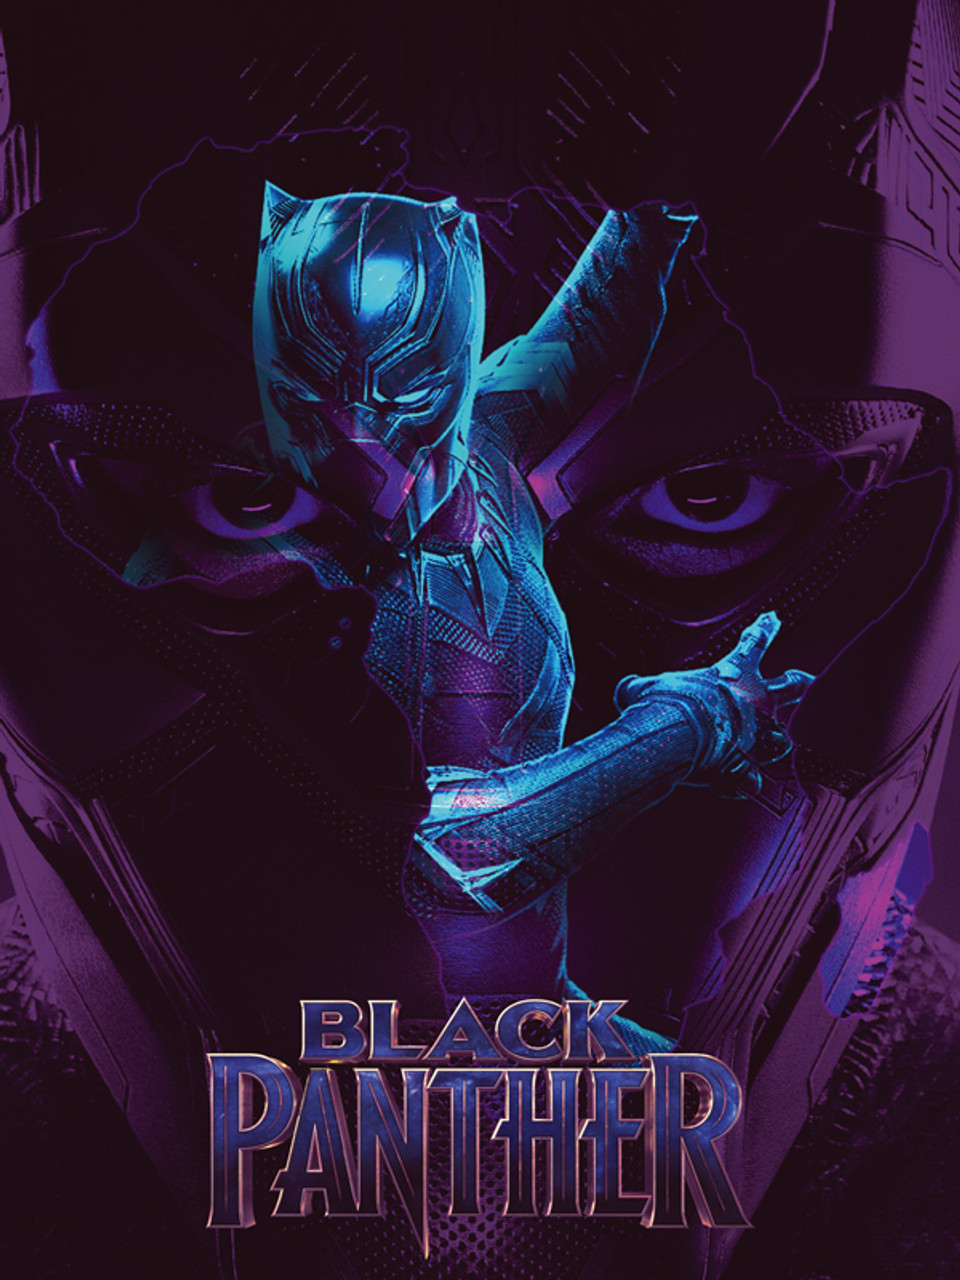 Movie Posters Black Panther